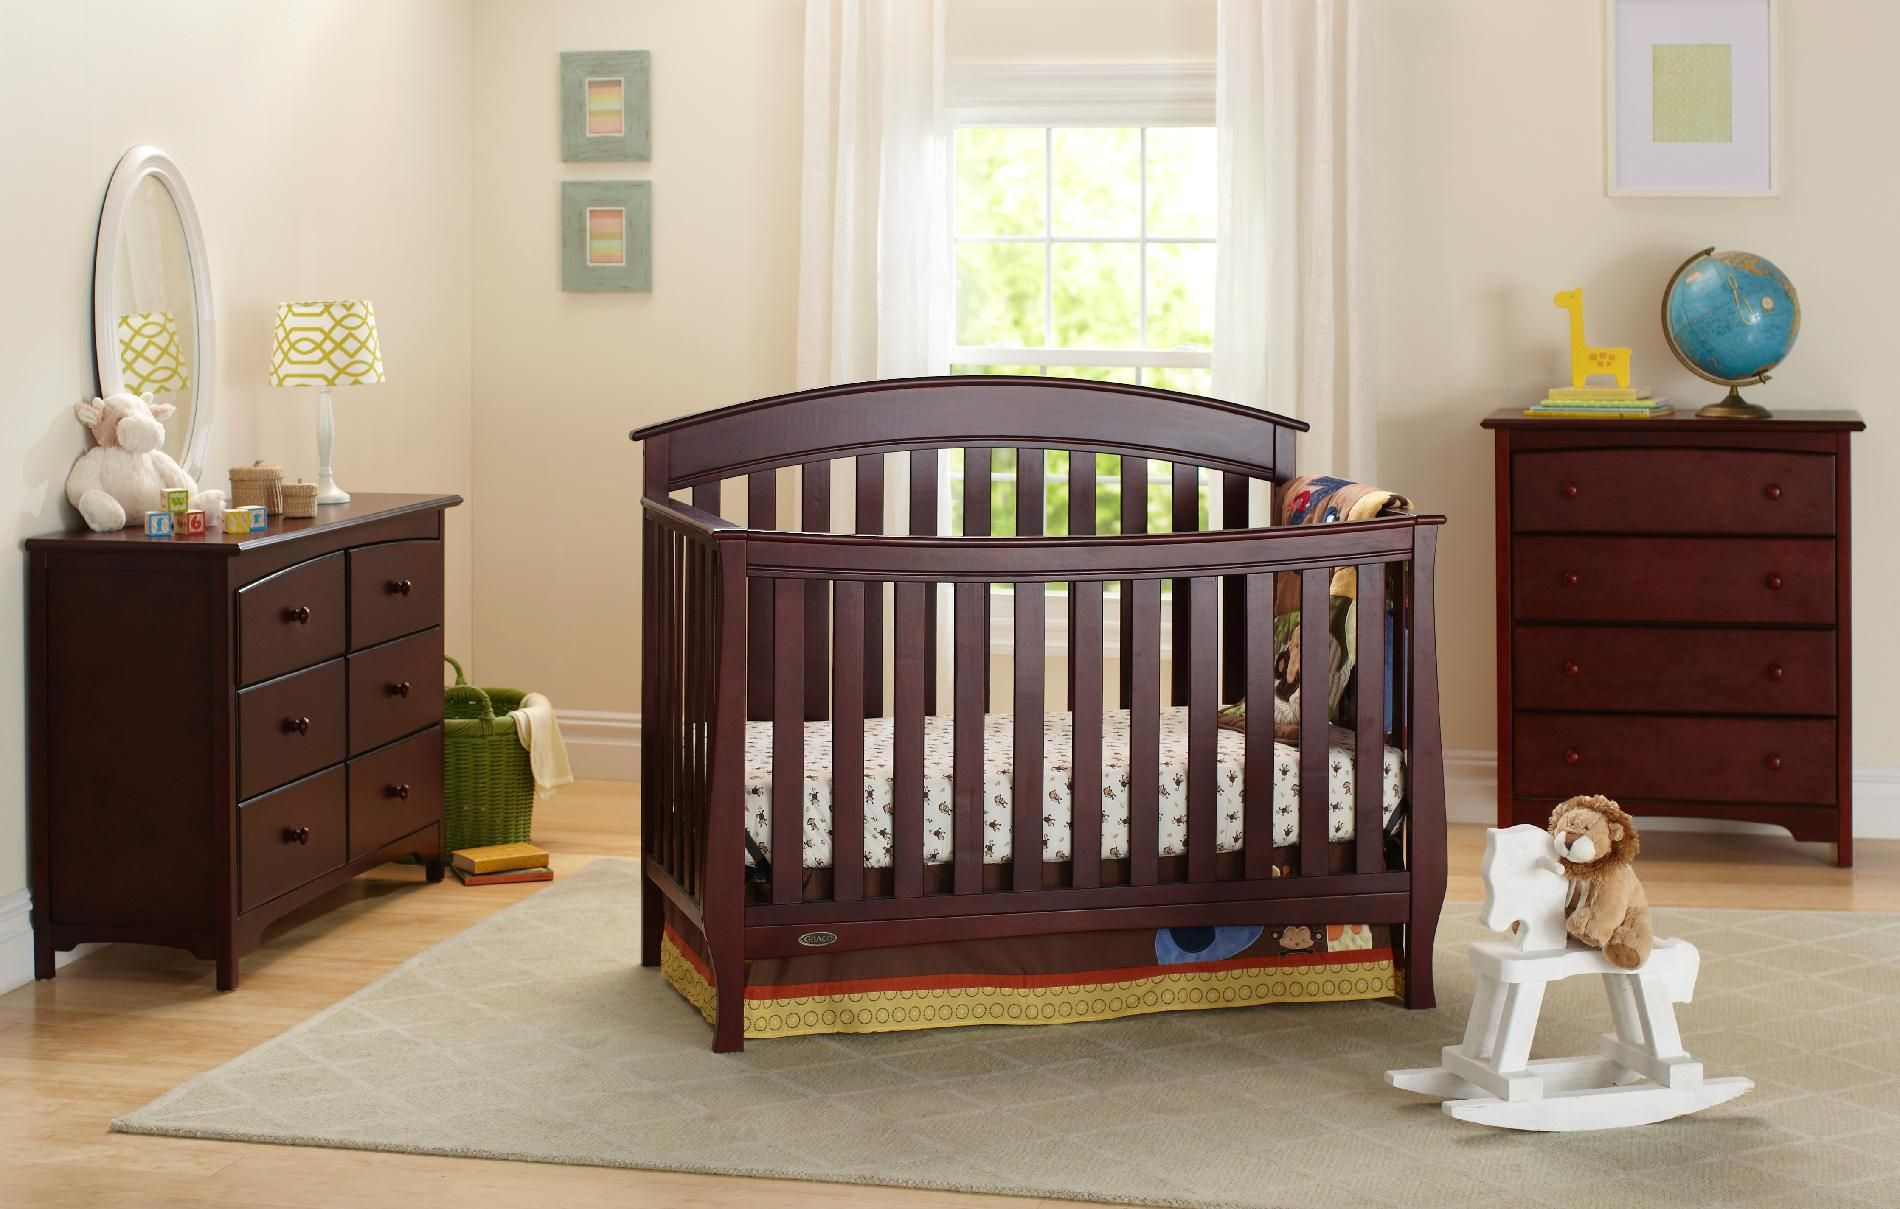 Pin On Baby Victoria 3 Sears baby bedroom set